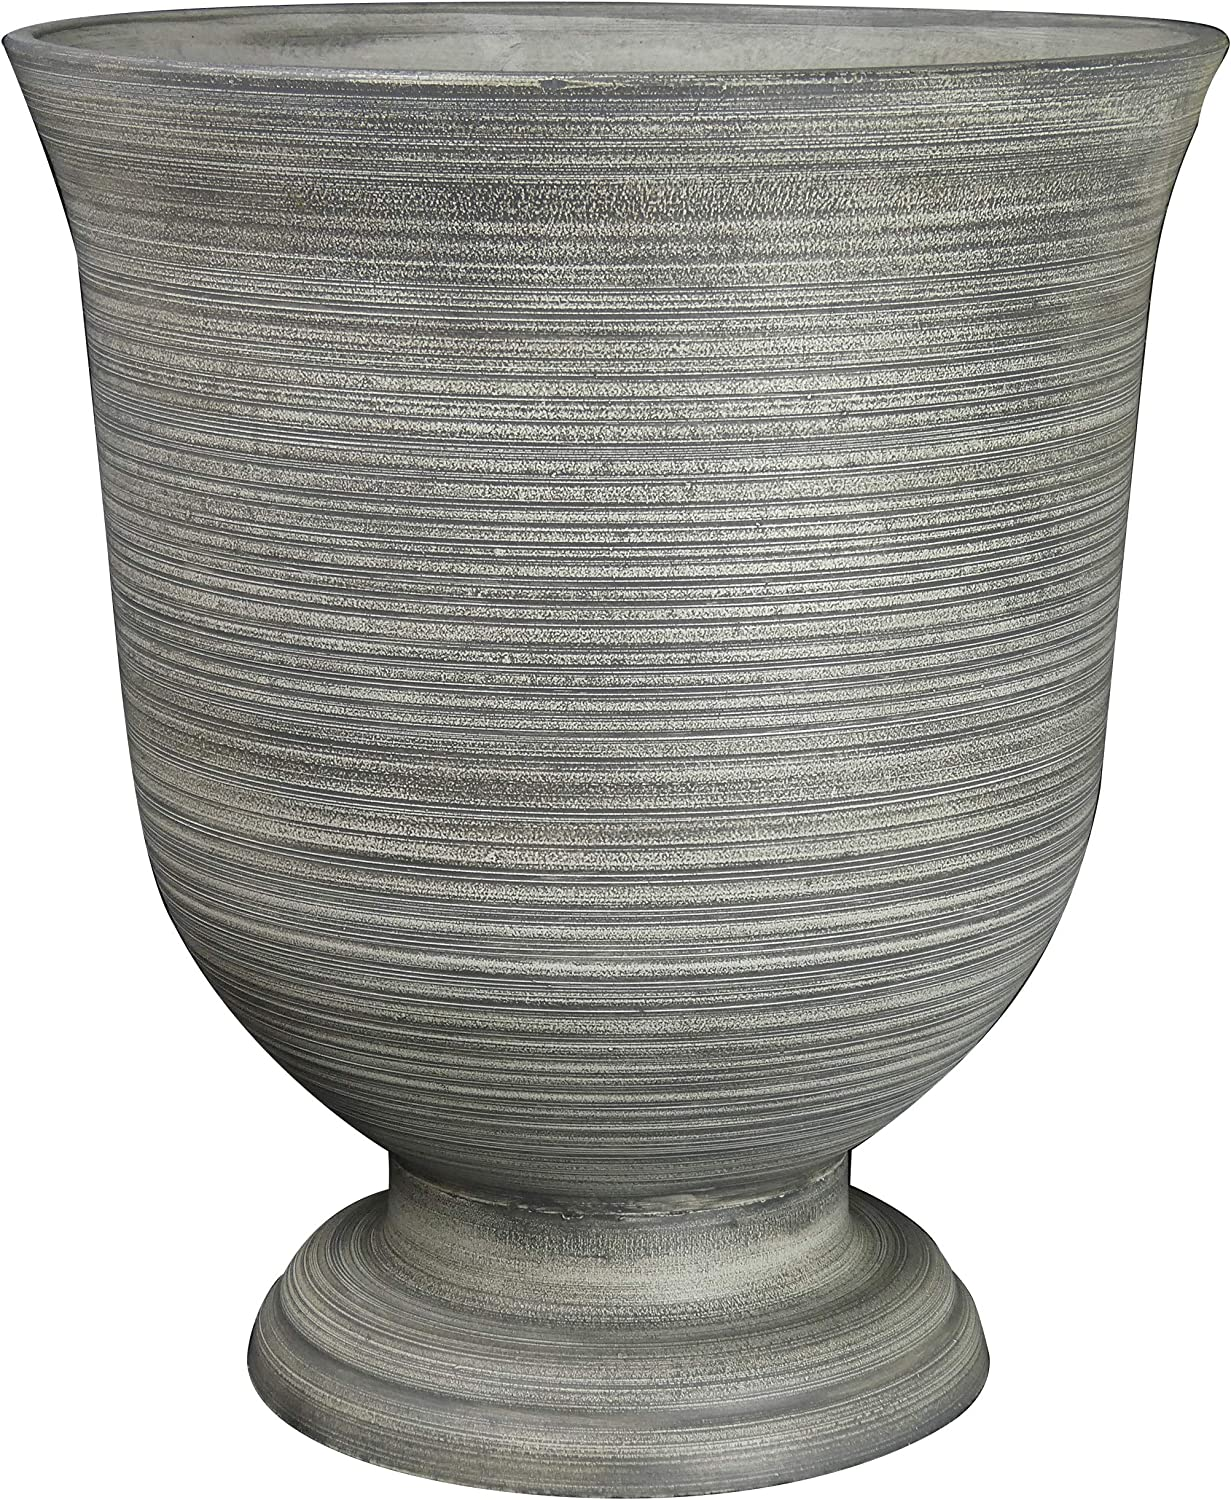 "Classic Home and Garden 39451D-518R 16"" Greenwich Urn Planter, Striated Granite"